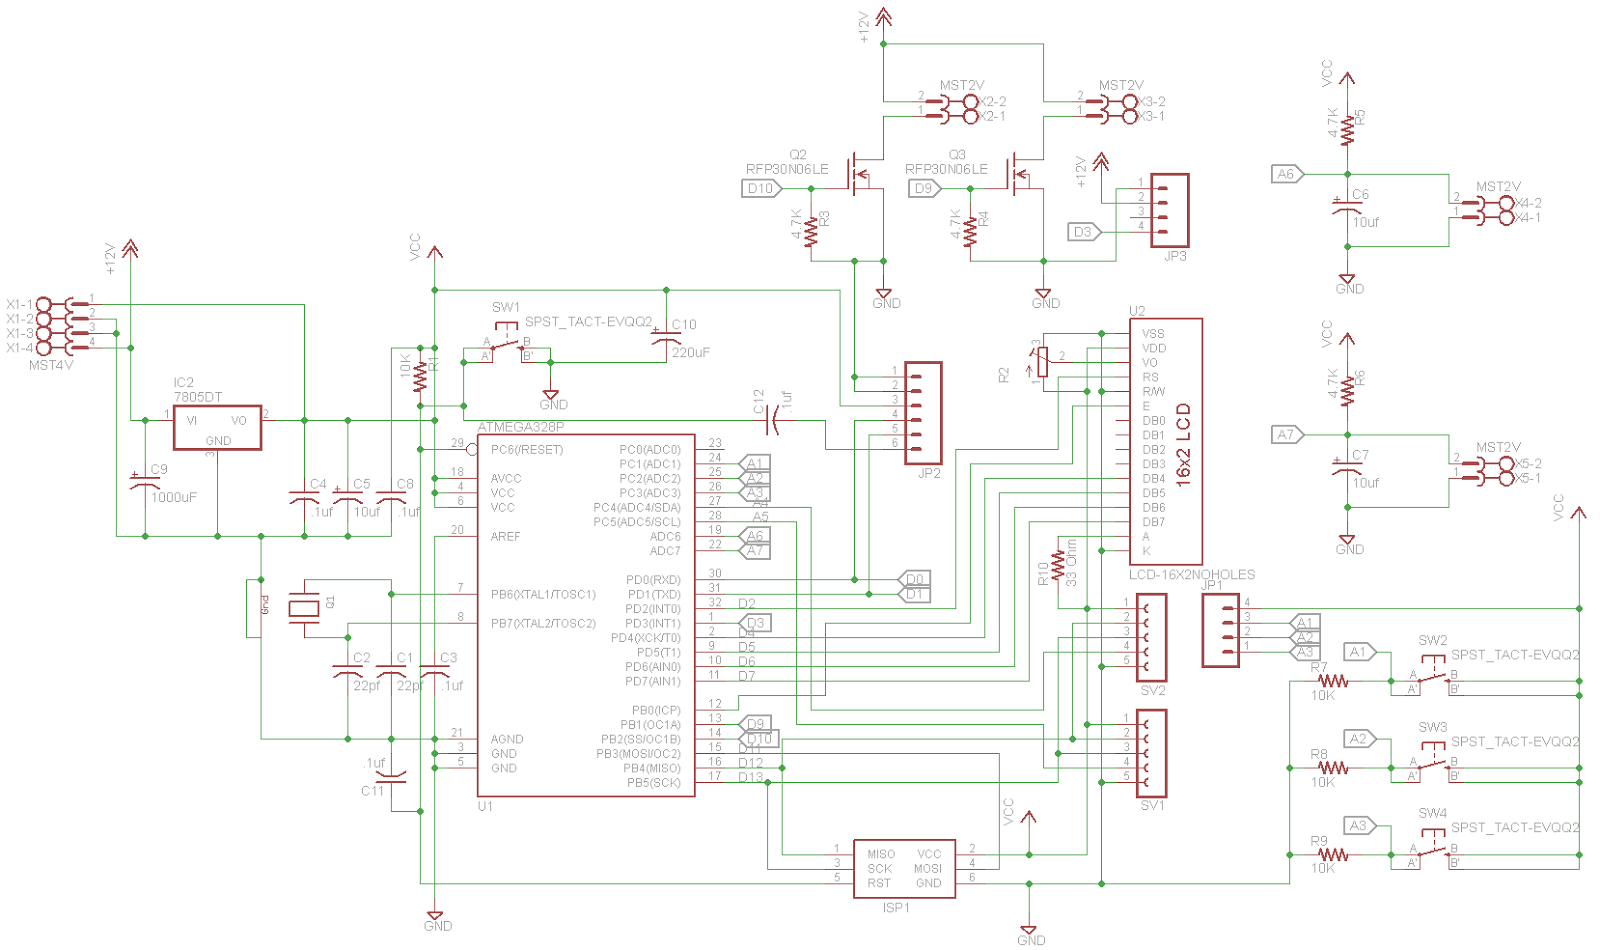 the oracle at delphi 3d printer the temperature controller raspberry pi wiring-diagram even though the lcd component says it's a 16x2 display, i'm actually using a 16x4 display the pinout is identical because i knew i needed to switch up to